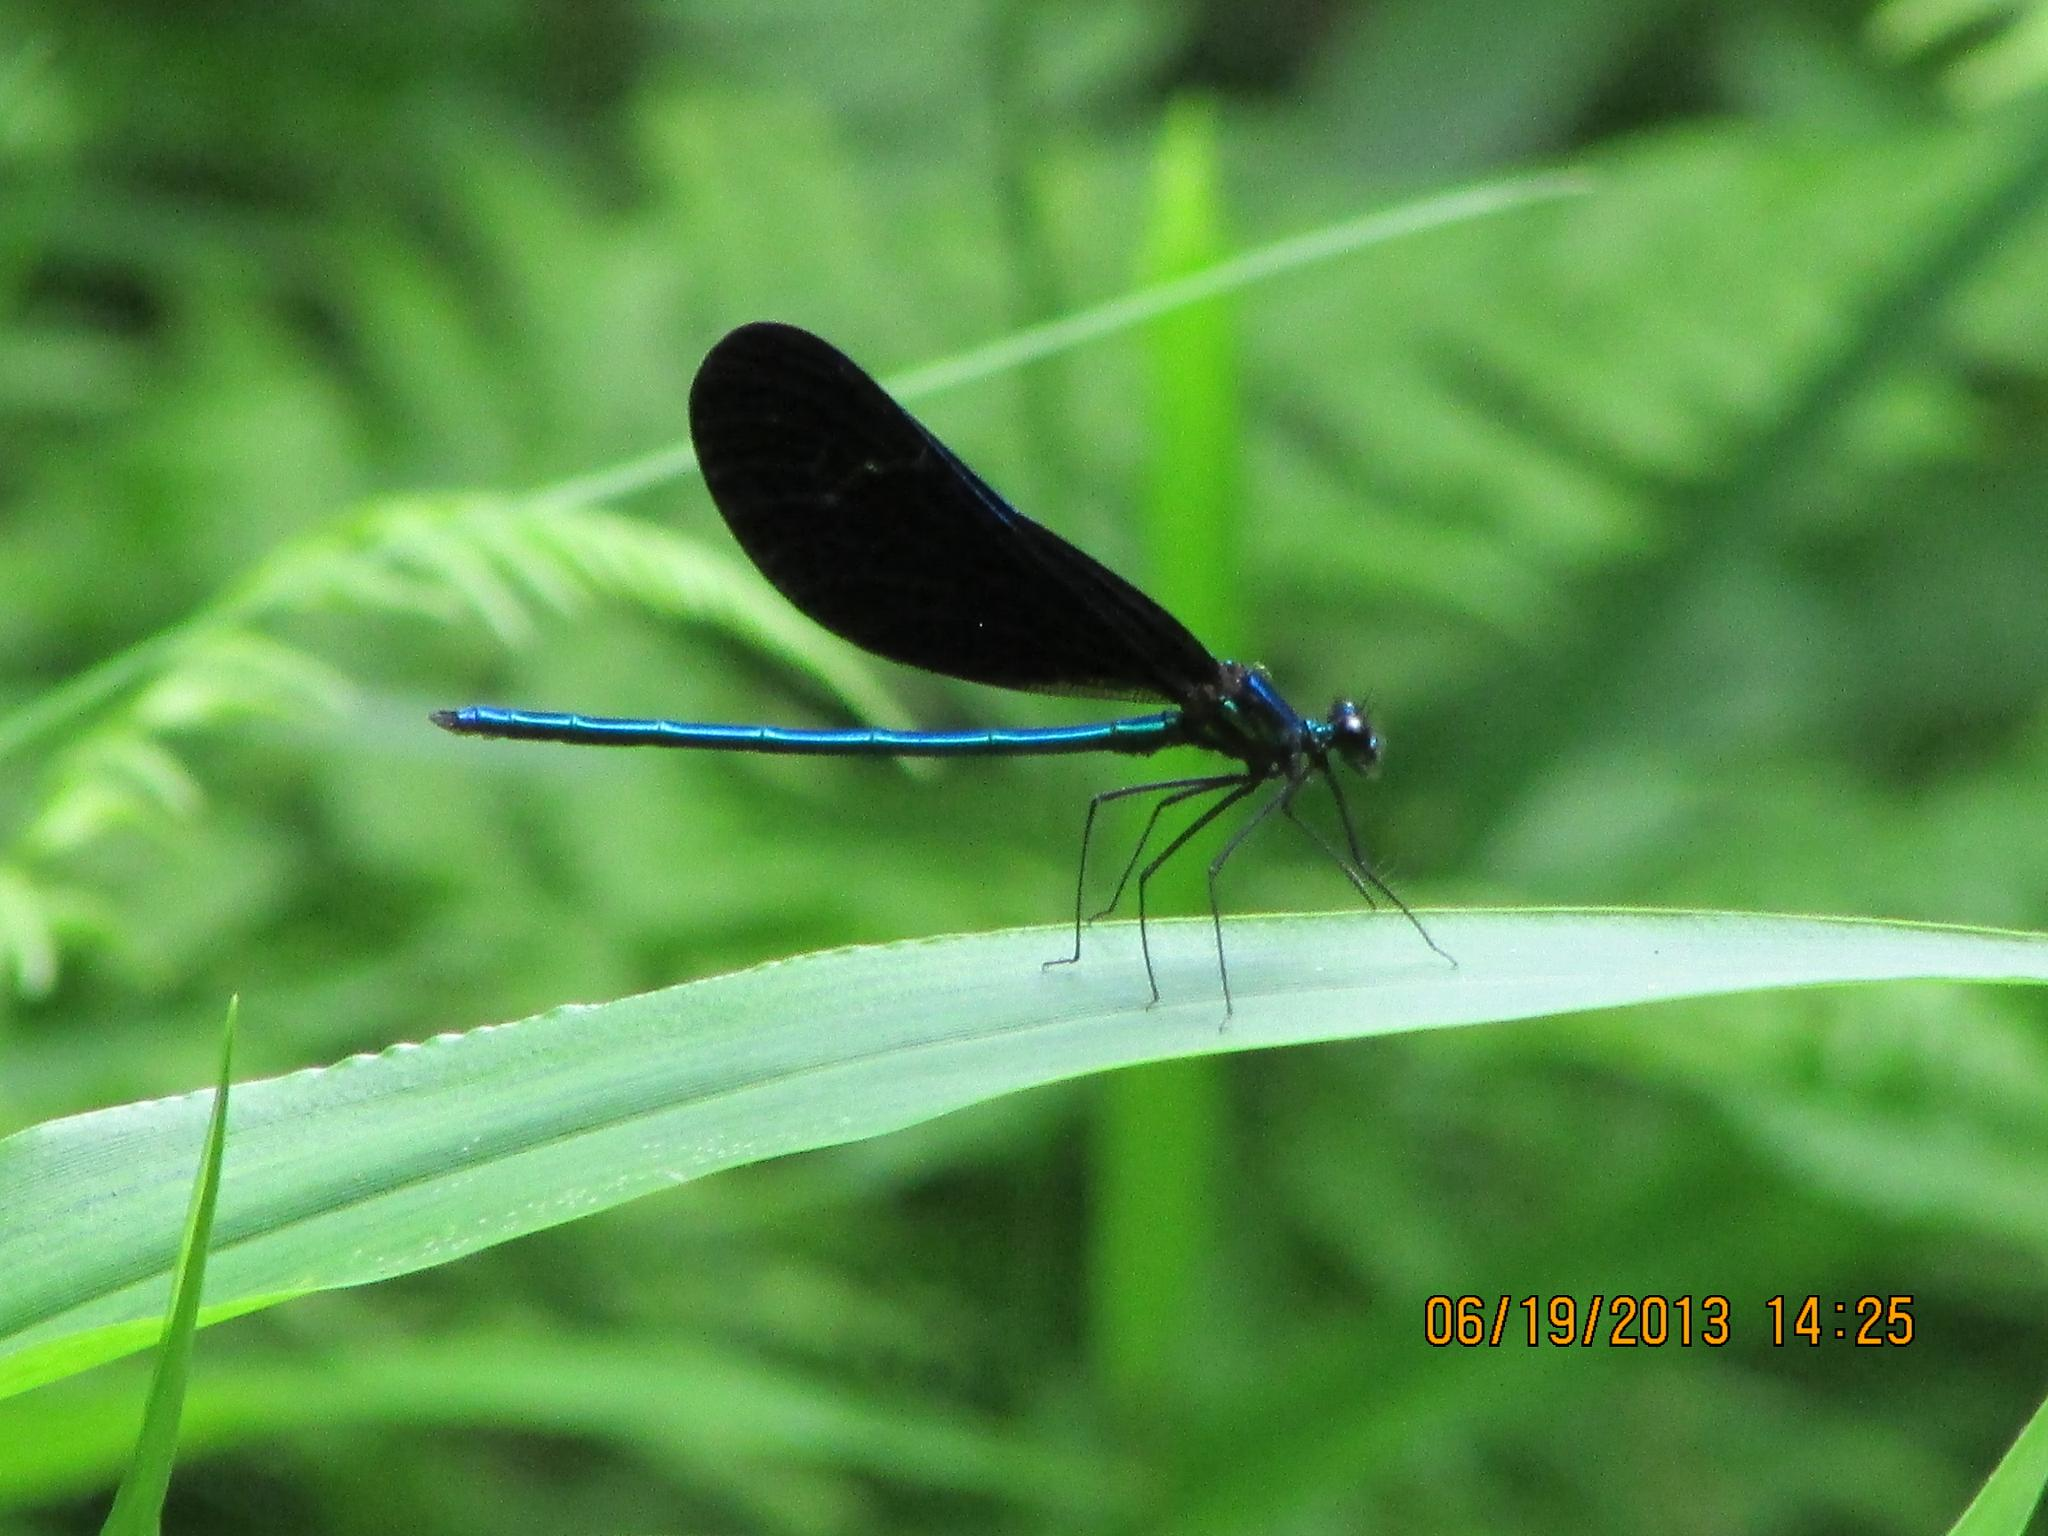 Damsel Fly by LavenderOpalStarlighter